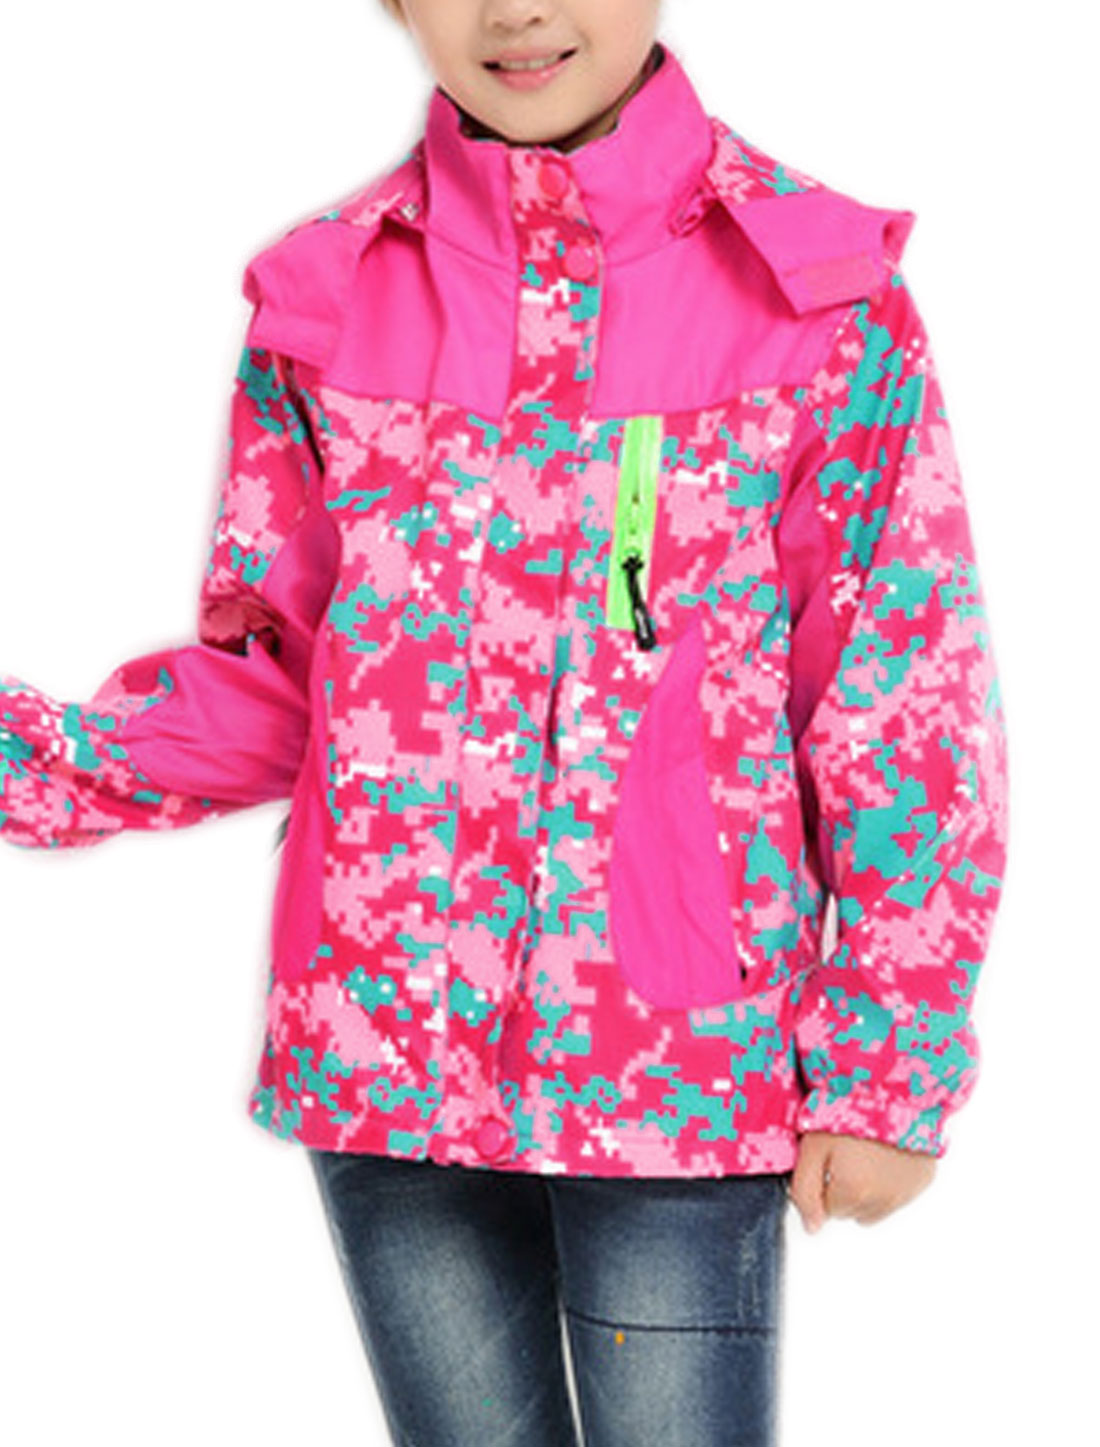 Girls Detachable Hood Zip Up Camouflage Pattern Jacket Fuchsia 8